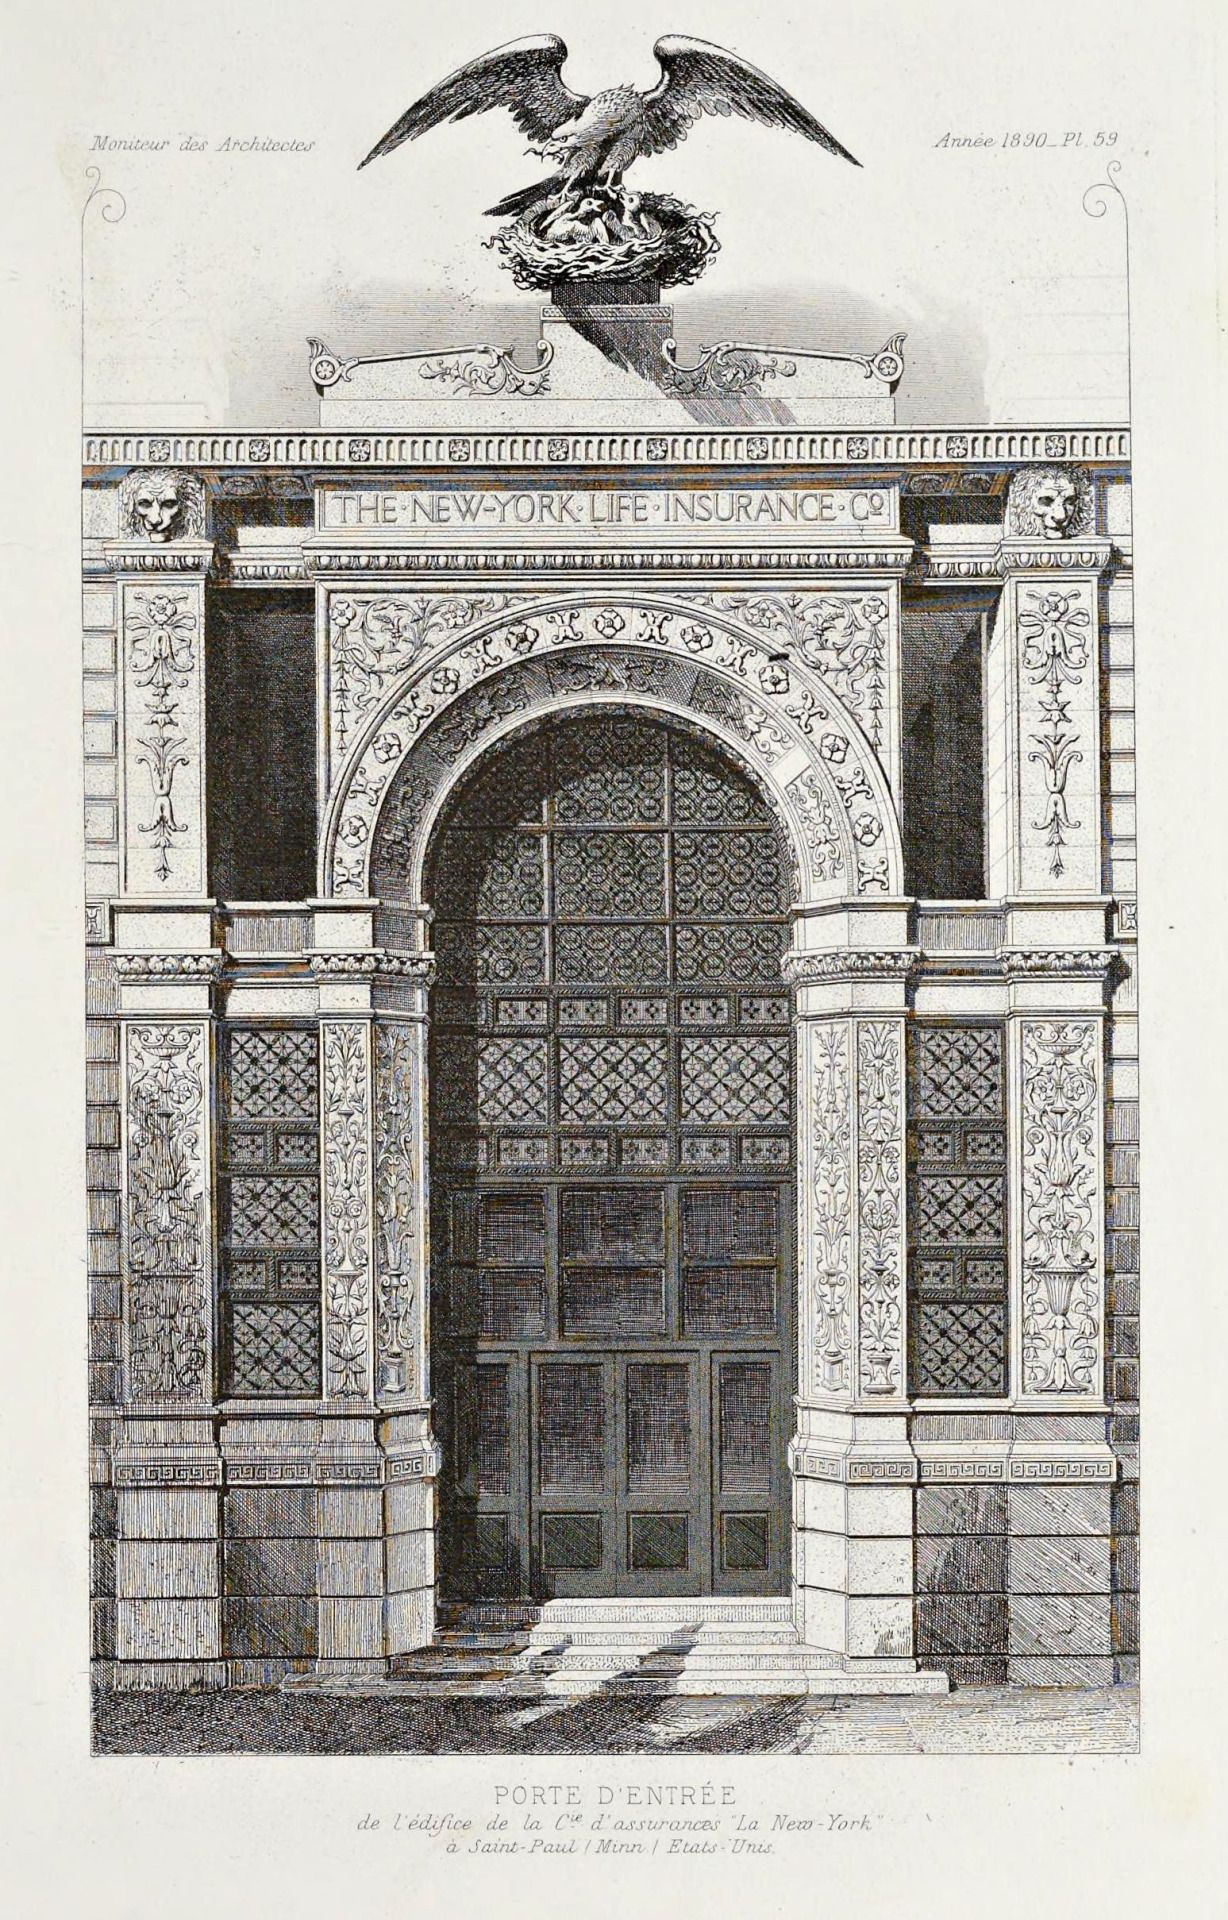 Elevation of the entrance door of the New York Life Insurance Company Building, St. Paul